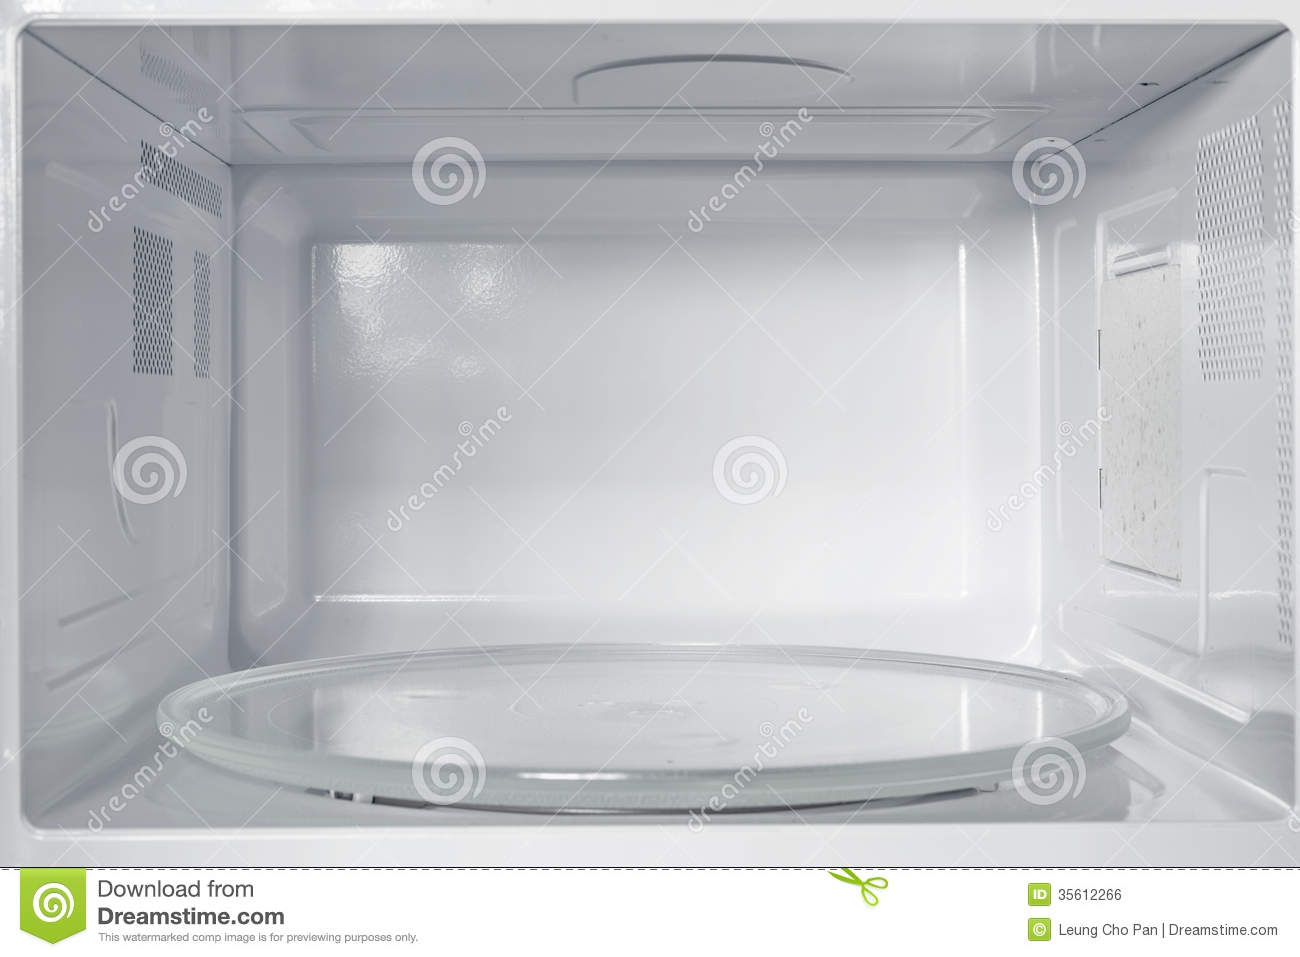 Microwave Oven Stock Photo  Image Of Plate  Dish  Oven